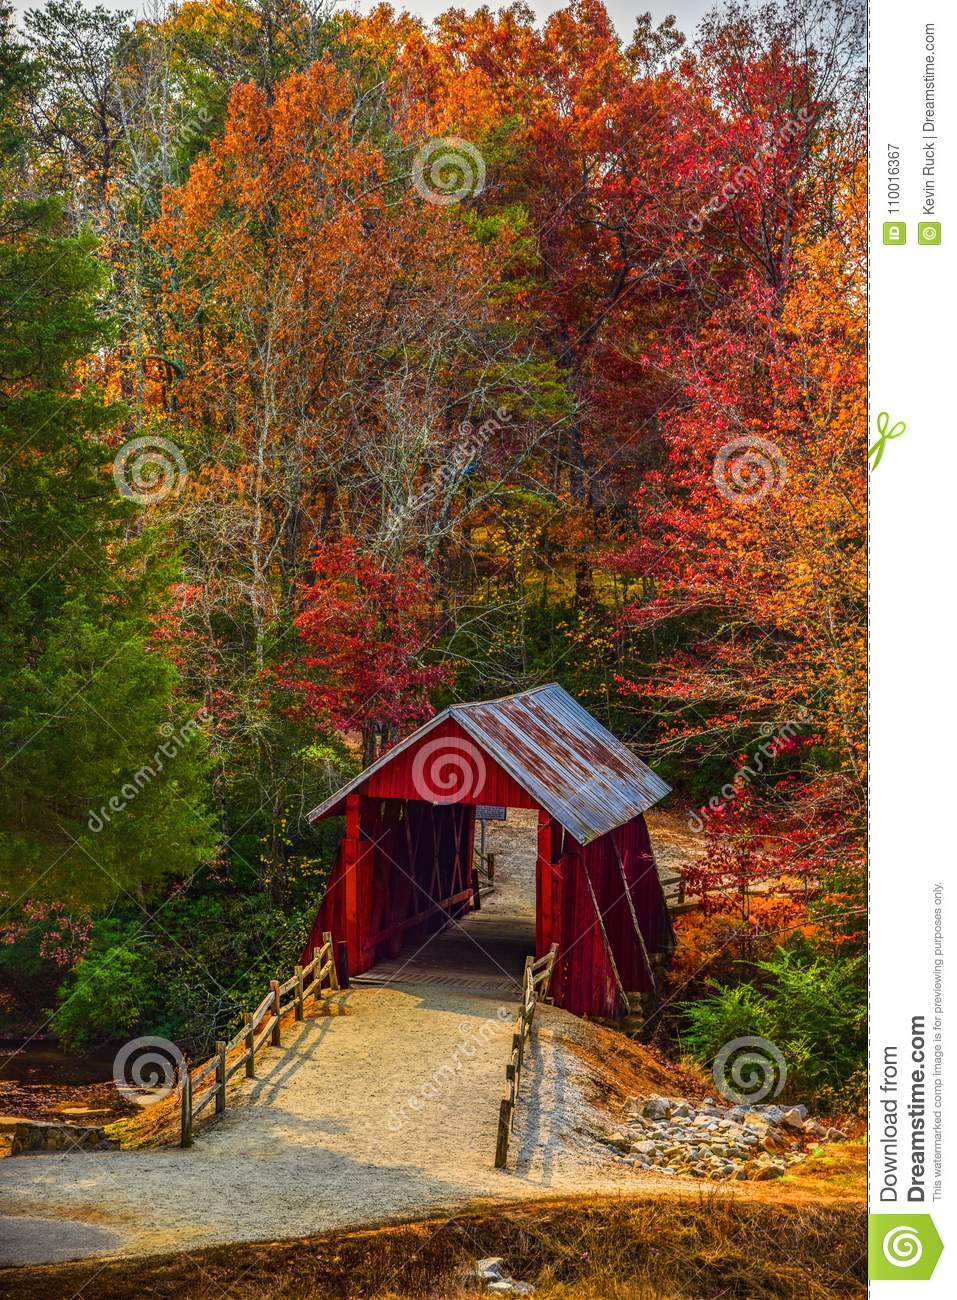 Campbells täckte bron med Autumn Fall Colors Landrum Greenville South Carolina